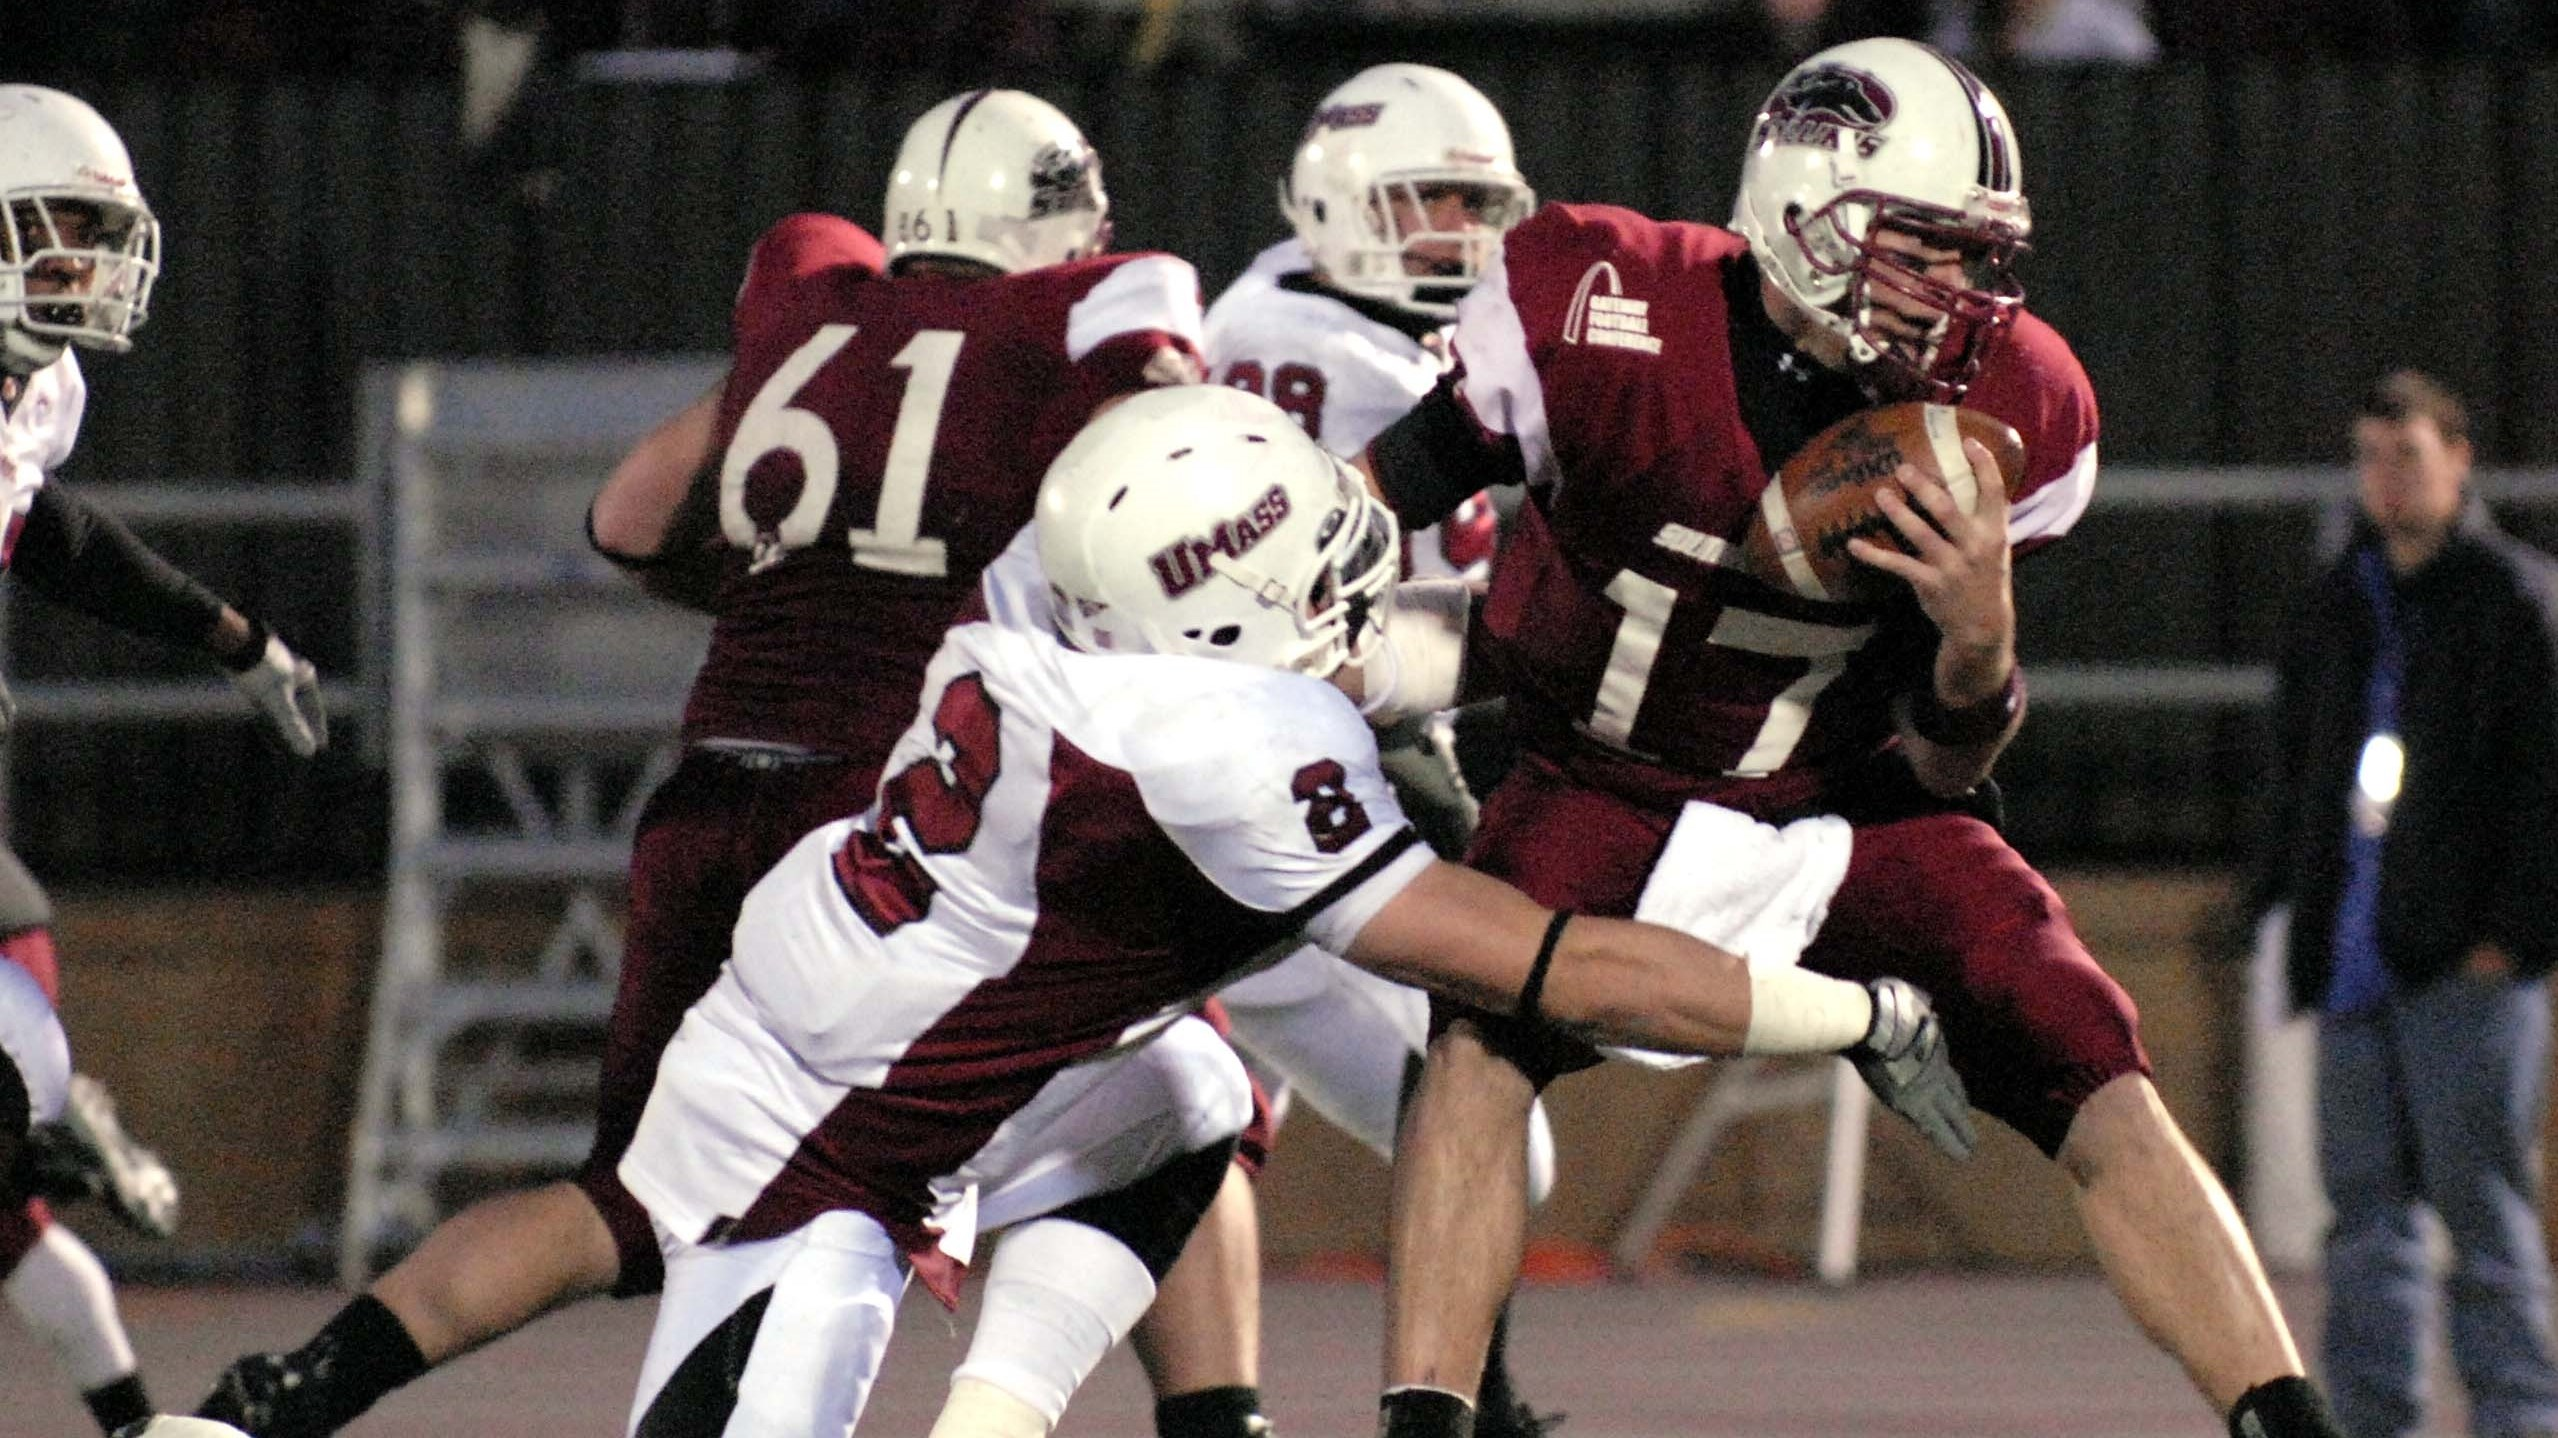 Southern Illinois quarterback Nick Hill, right, is brought down in the backfield by Massachusetts' Jeremy Horne during a college football playoff game, Saturday, Dec. 1, 2007 in Carbondale, Ill. (AP Photo/Pamela Kay Schmalenberger)